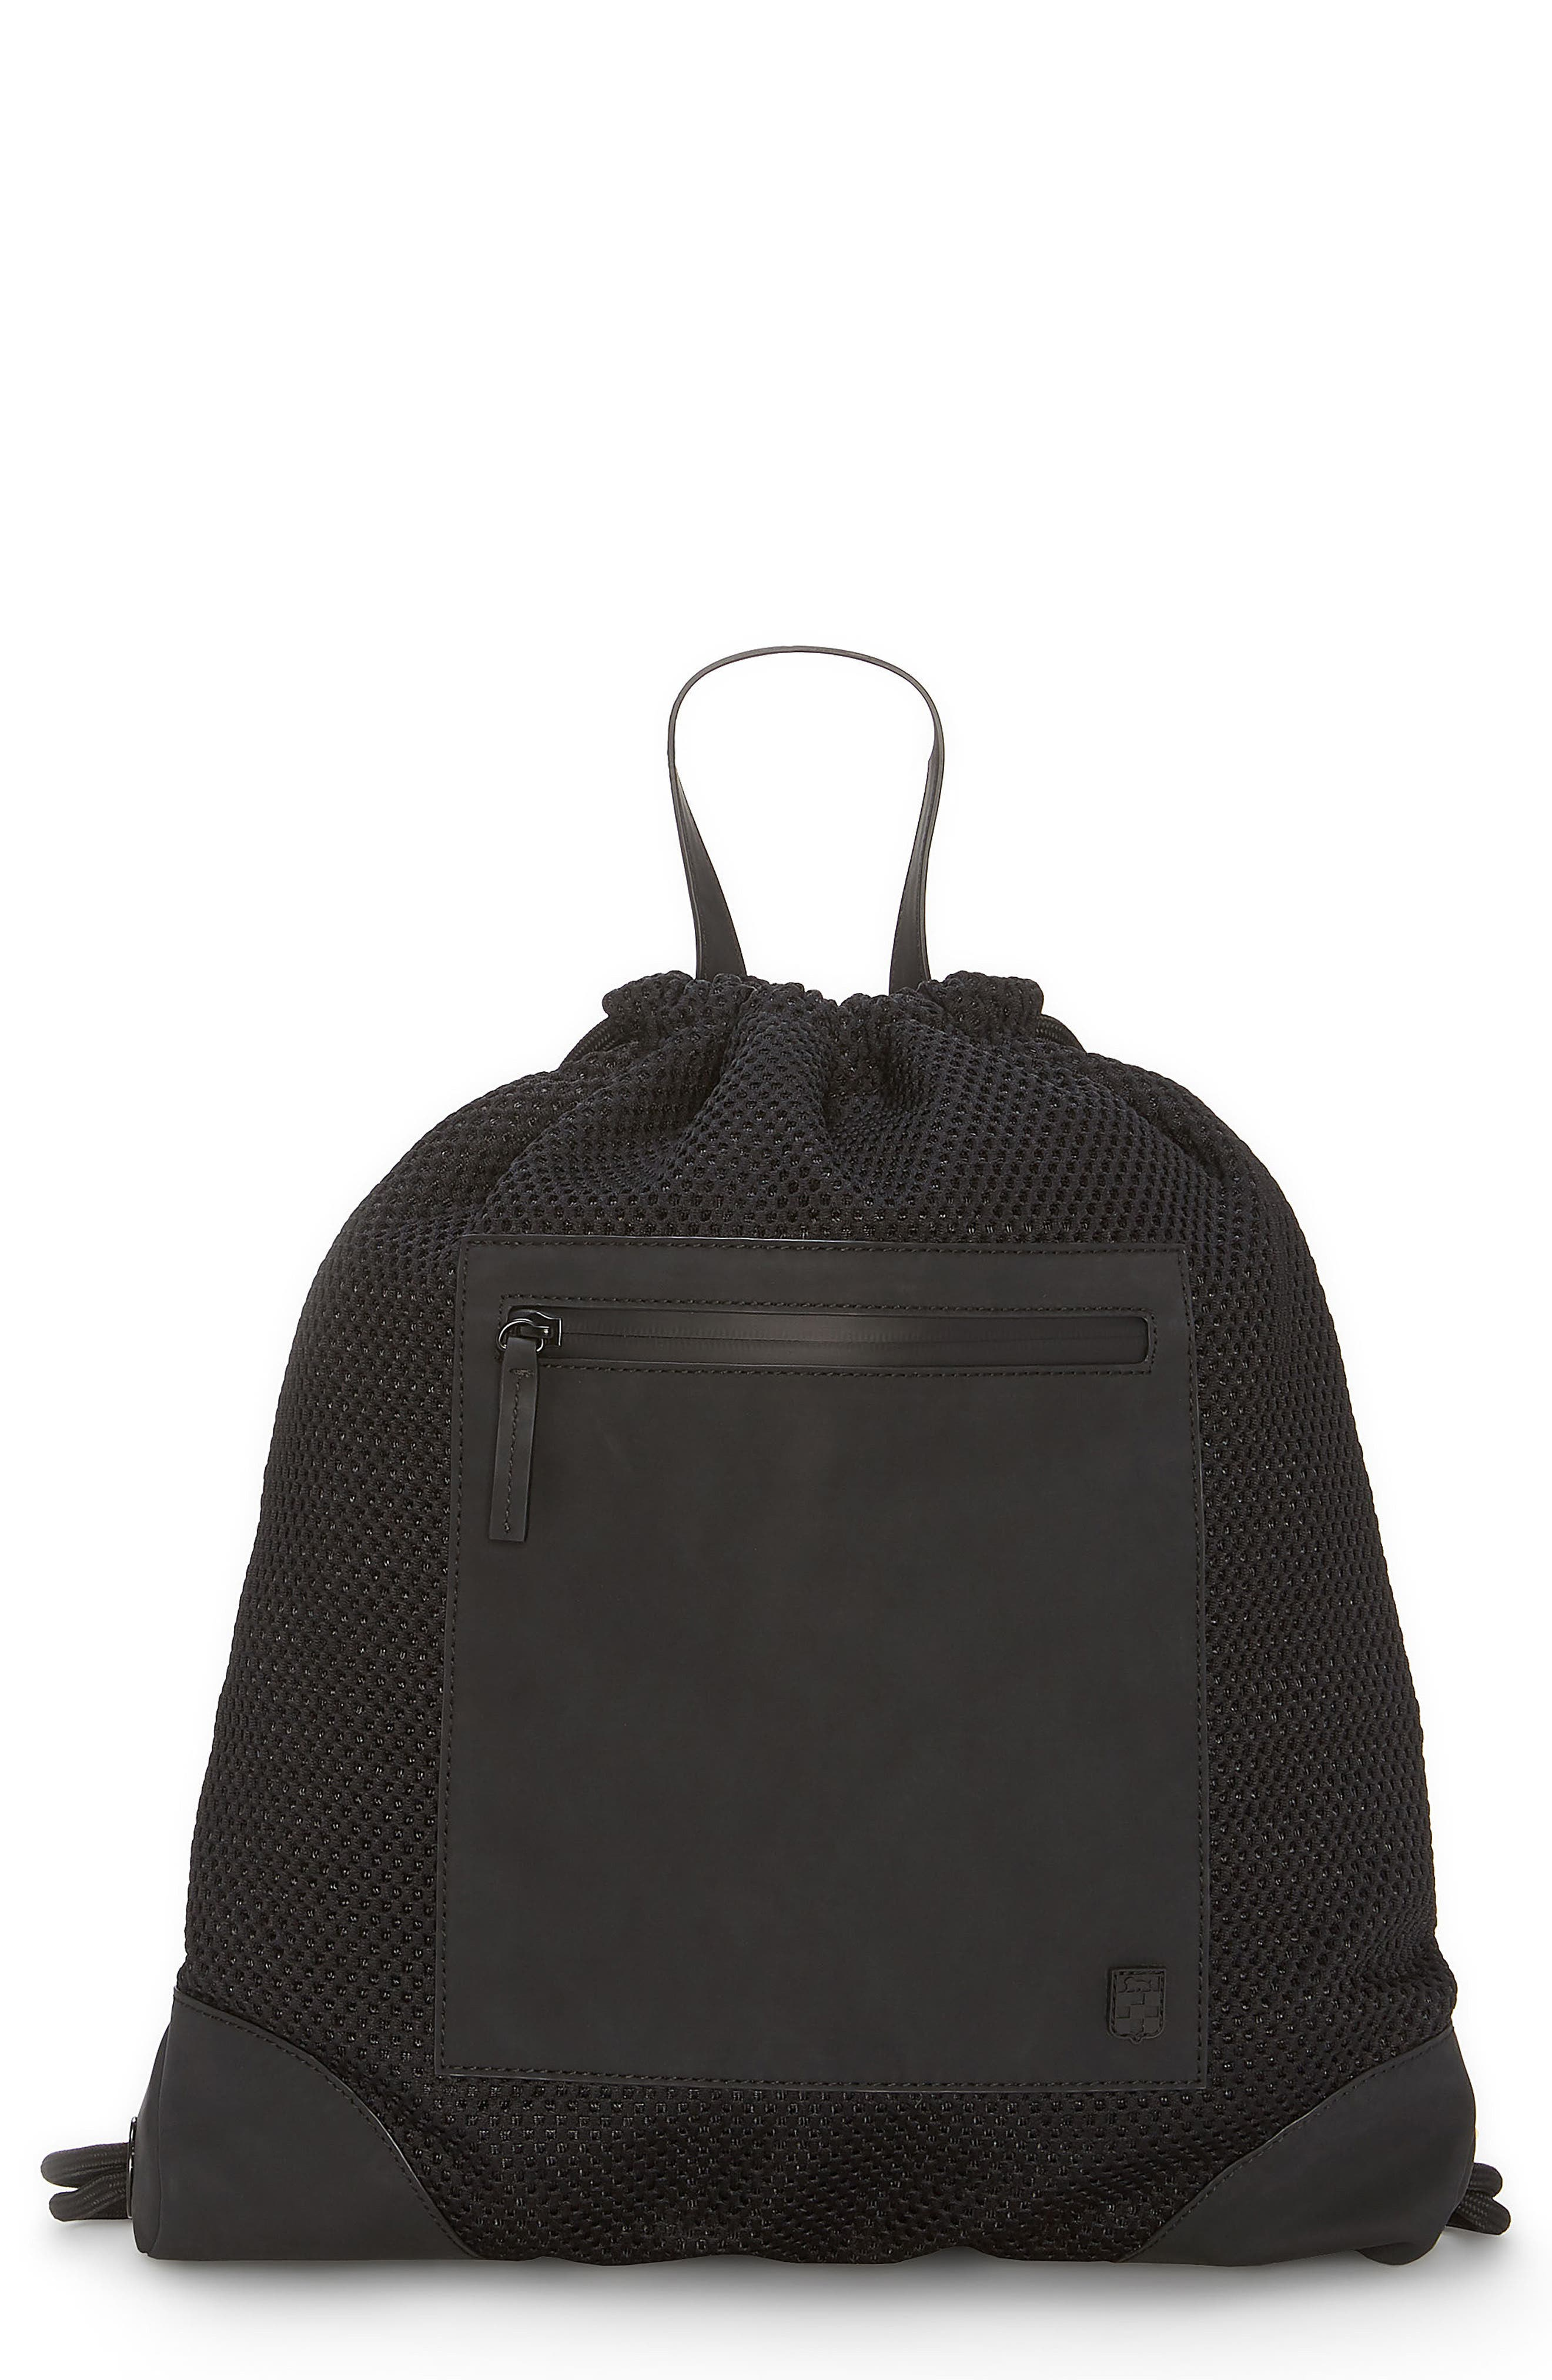 Vince Camuto Urban Mesh Backpack